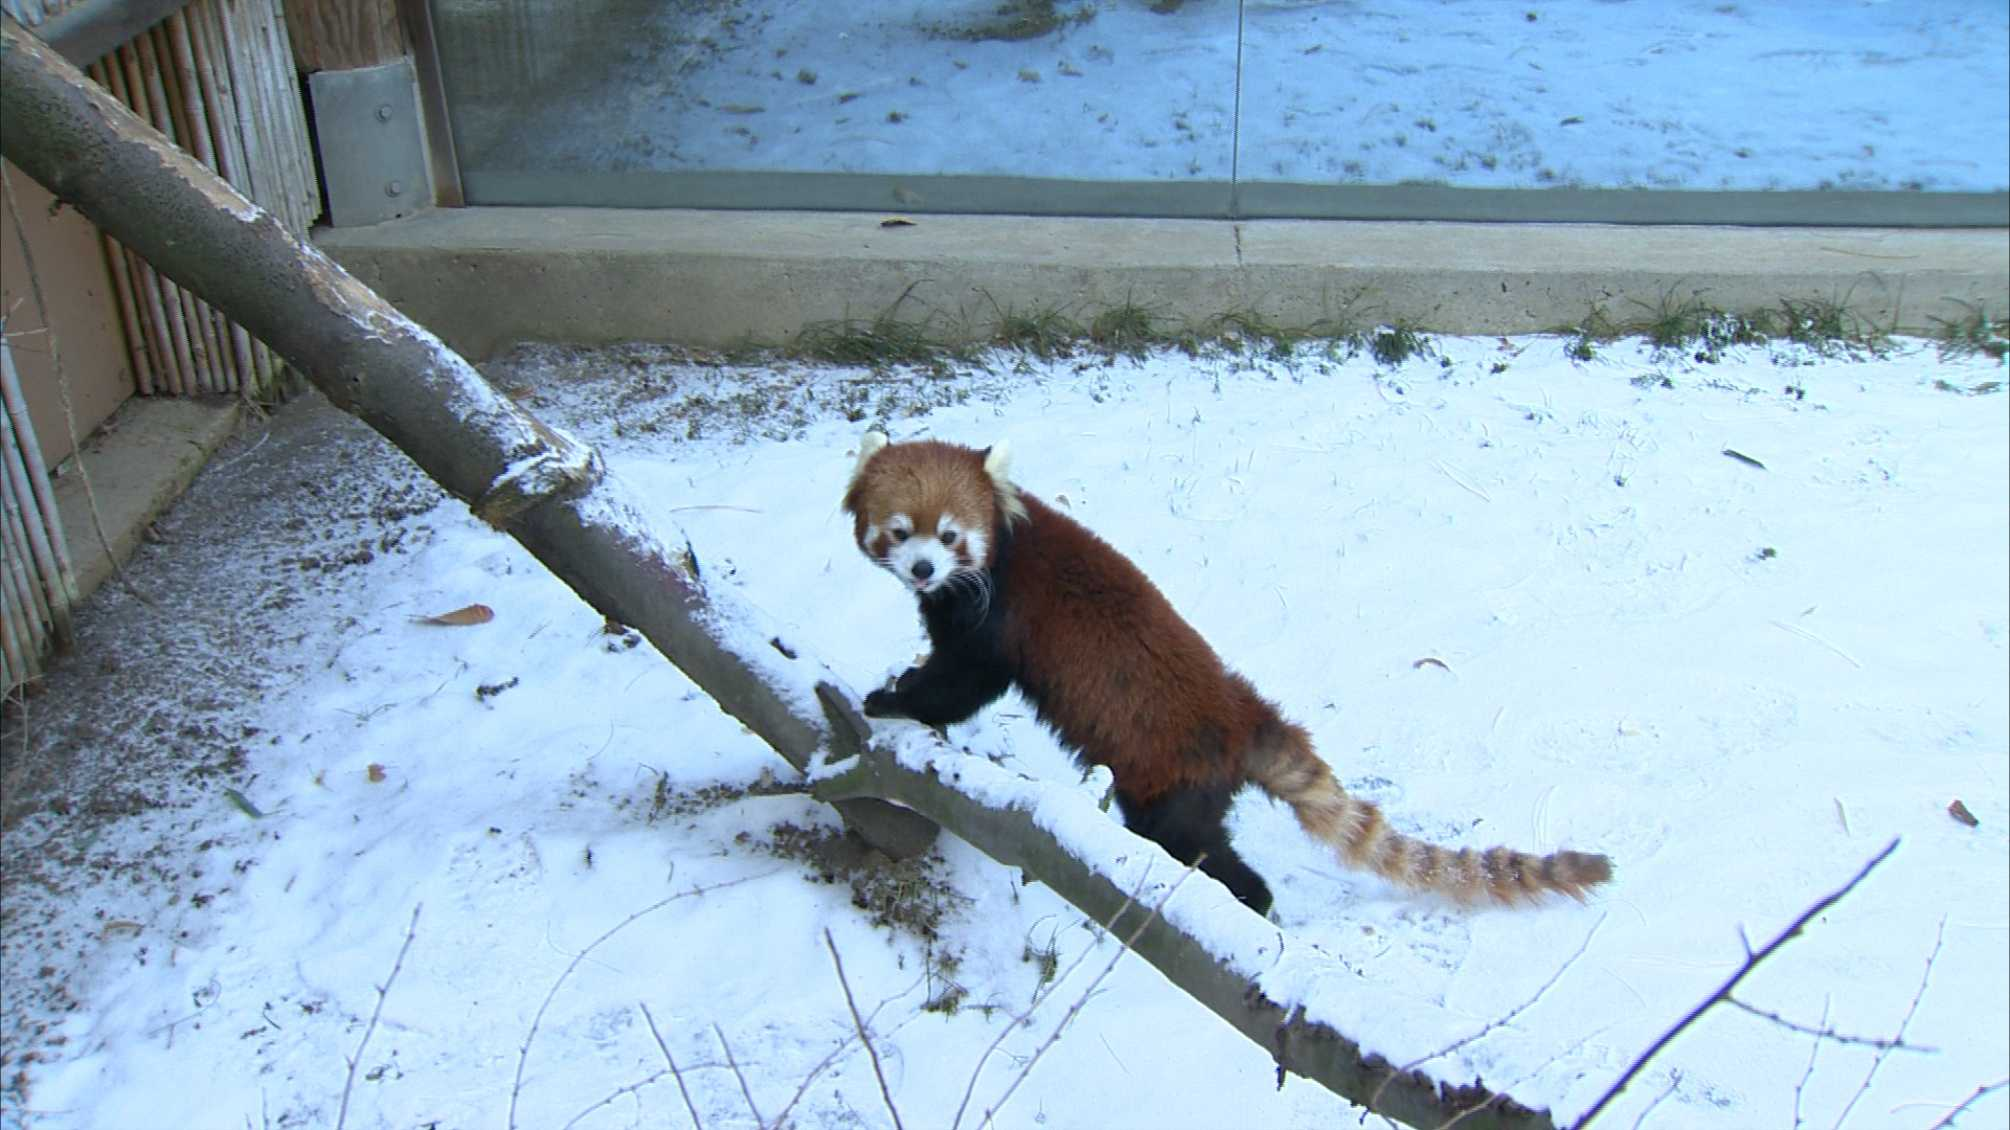 A red panda ventures into the snow at Pittsburgh Zoo & PPG Aquarium on Tuesday